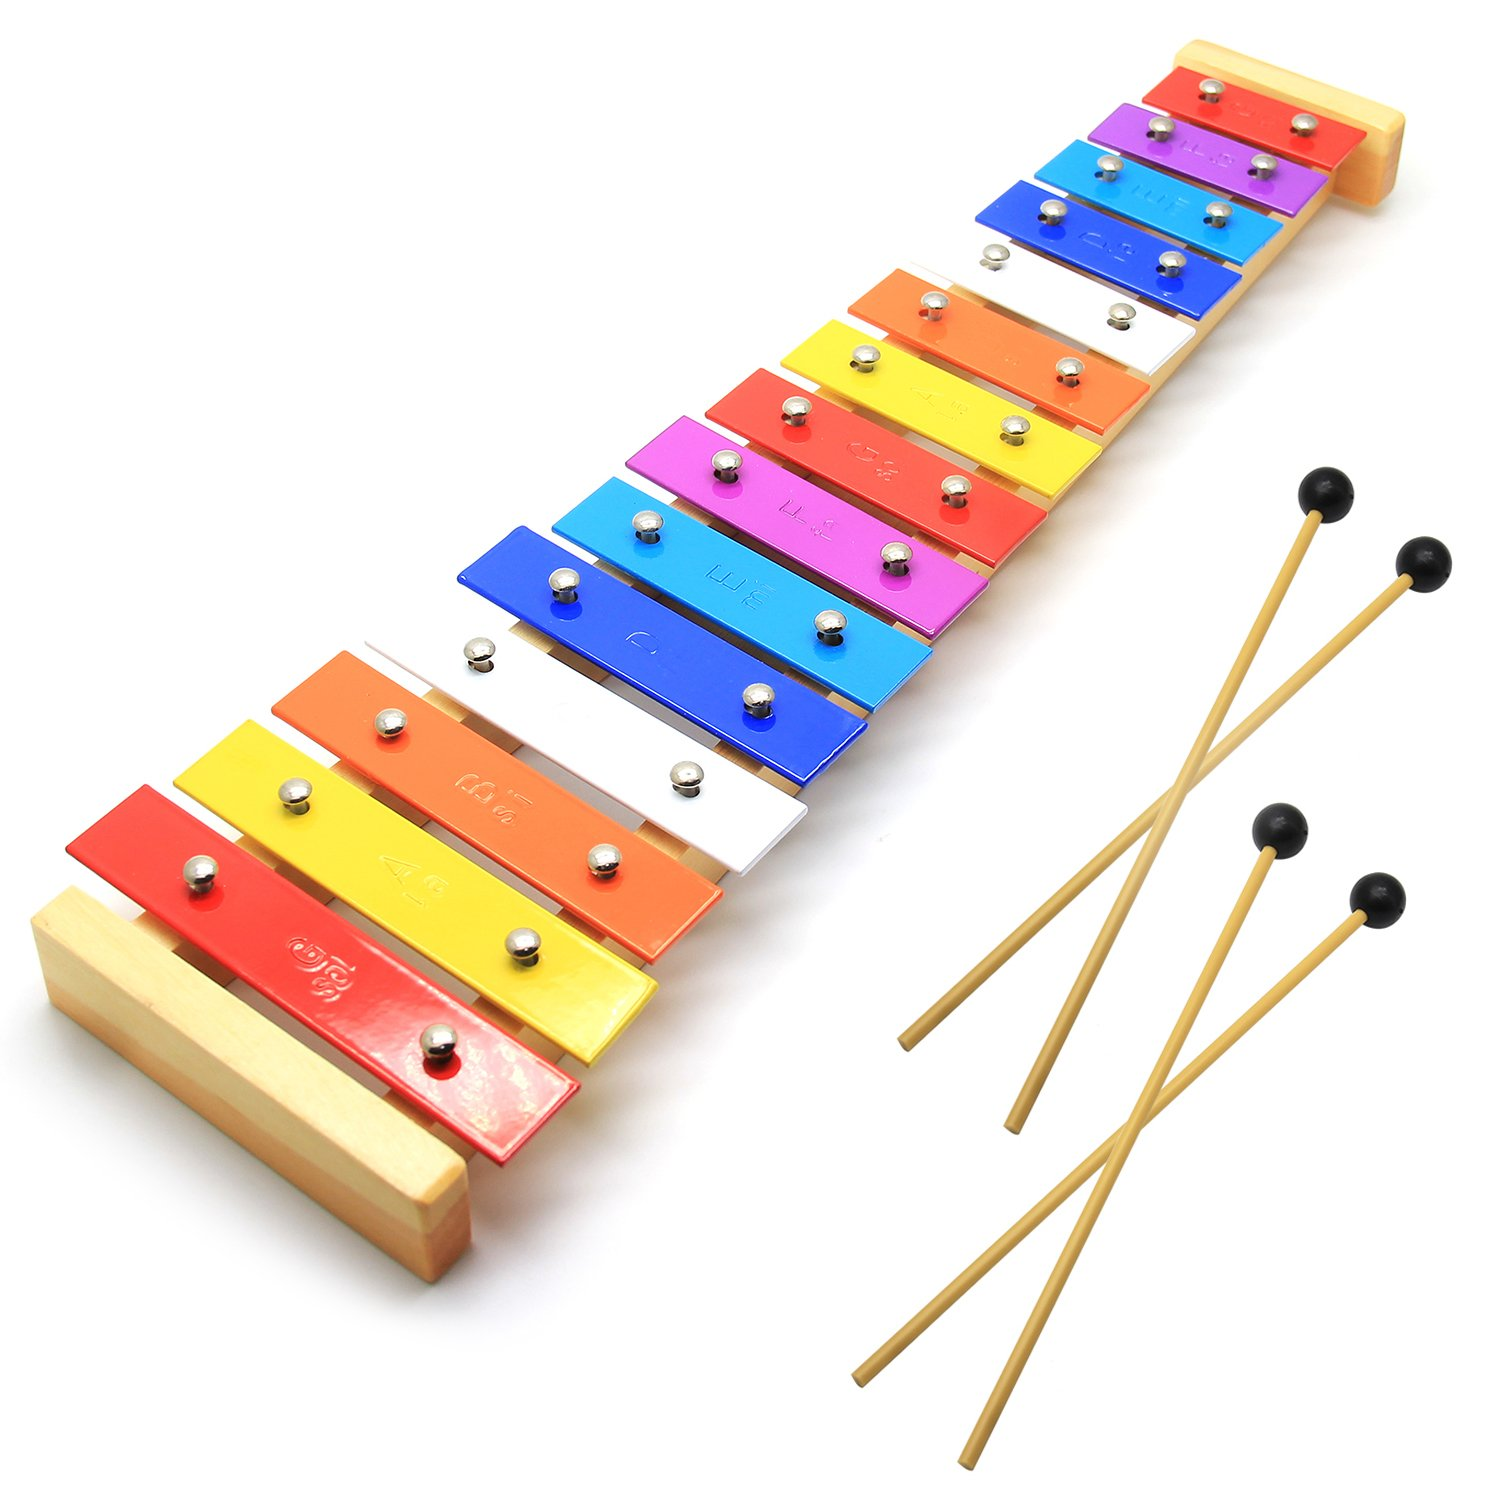 CELEMOON Natural Wooden Toddler Xylophone Glockenspiel For Kids with Multi-Colored Metal Bars Included Two Sets of Child-Safe Wooden Mallets (15-tone) by CELEMOON (Image #1)